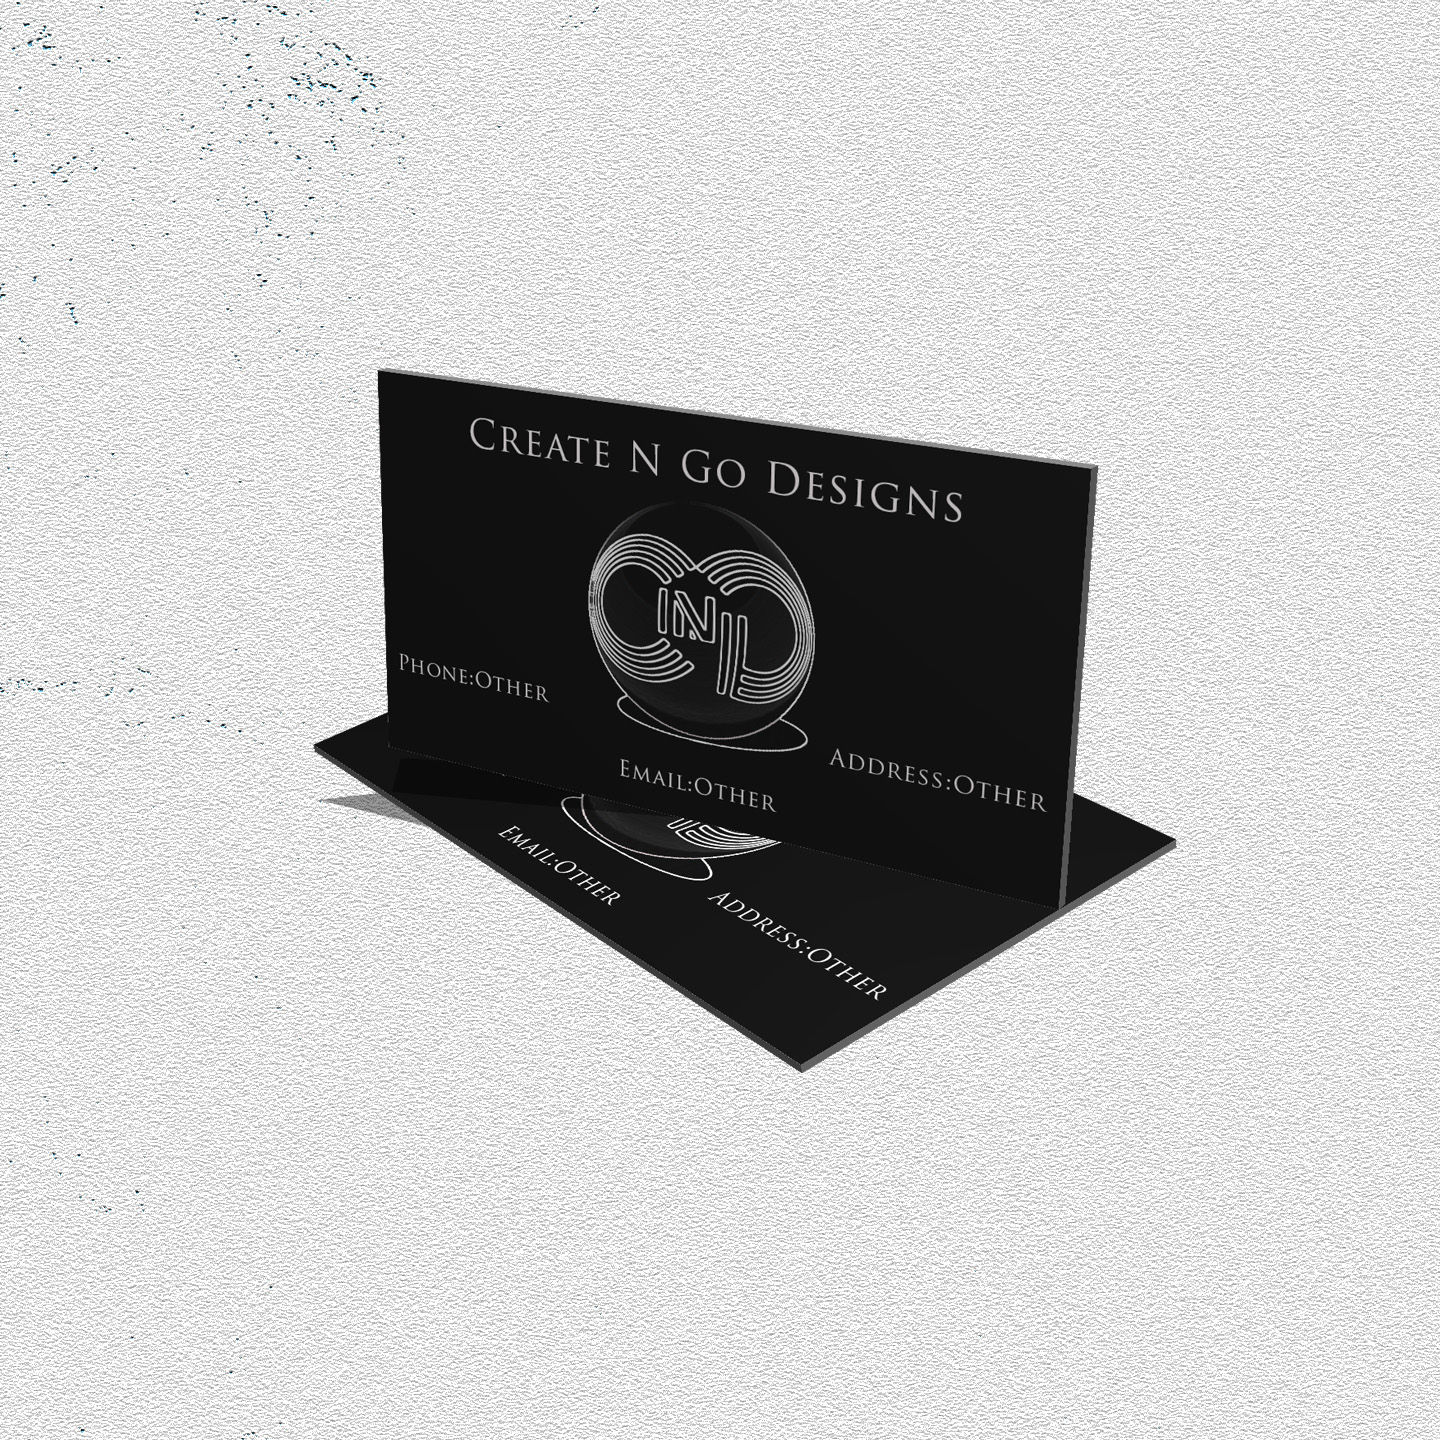 If you are looking for a a design or logo for your business cards contact me